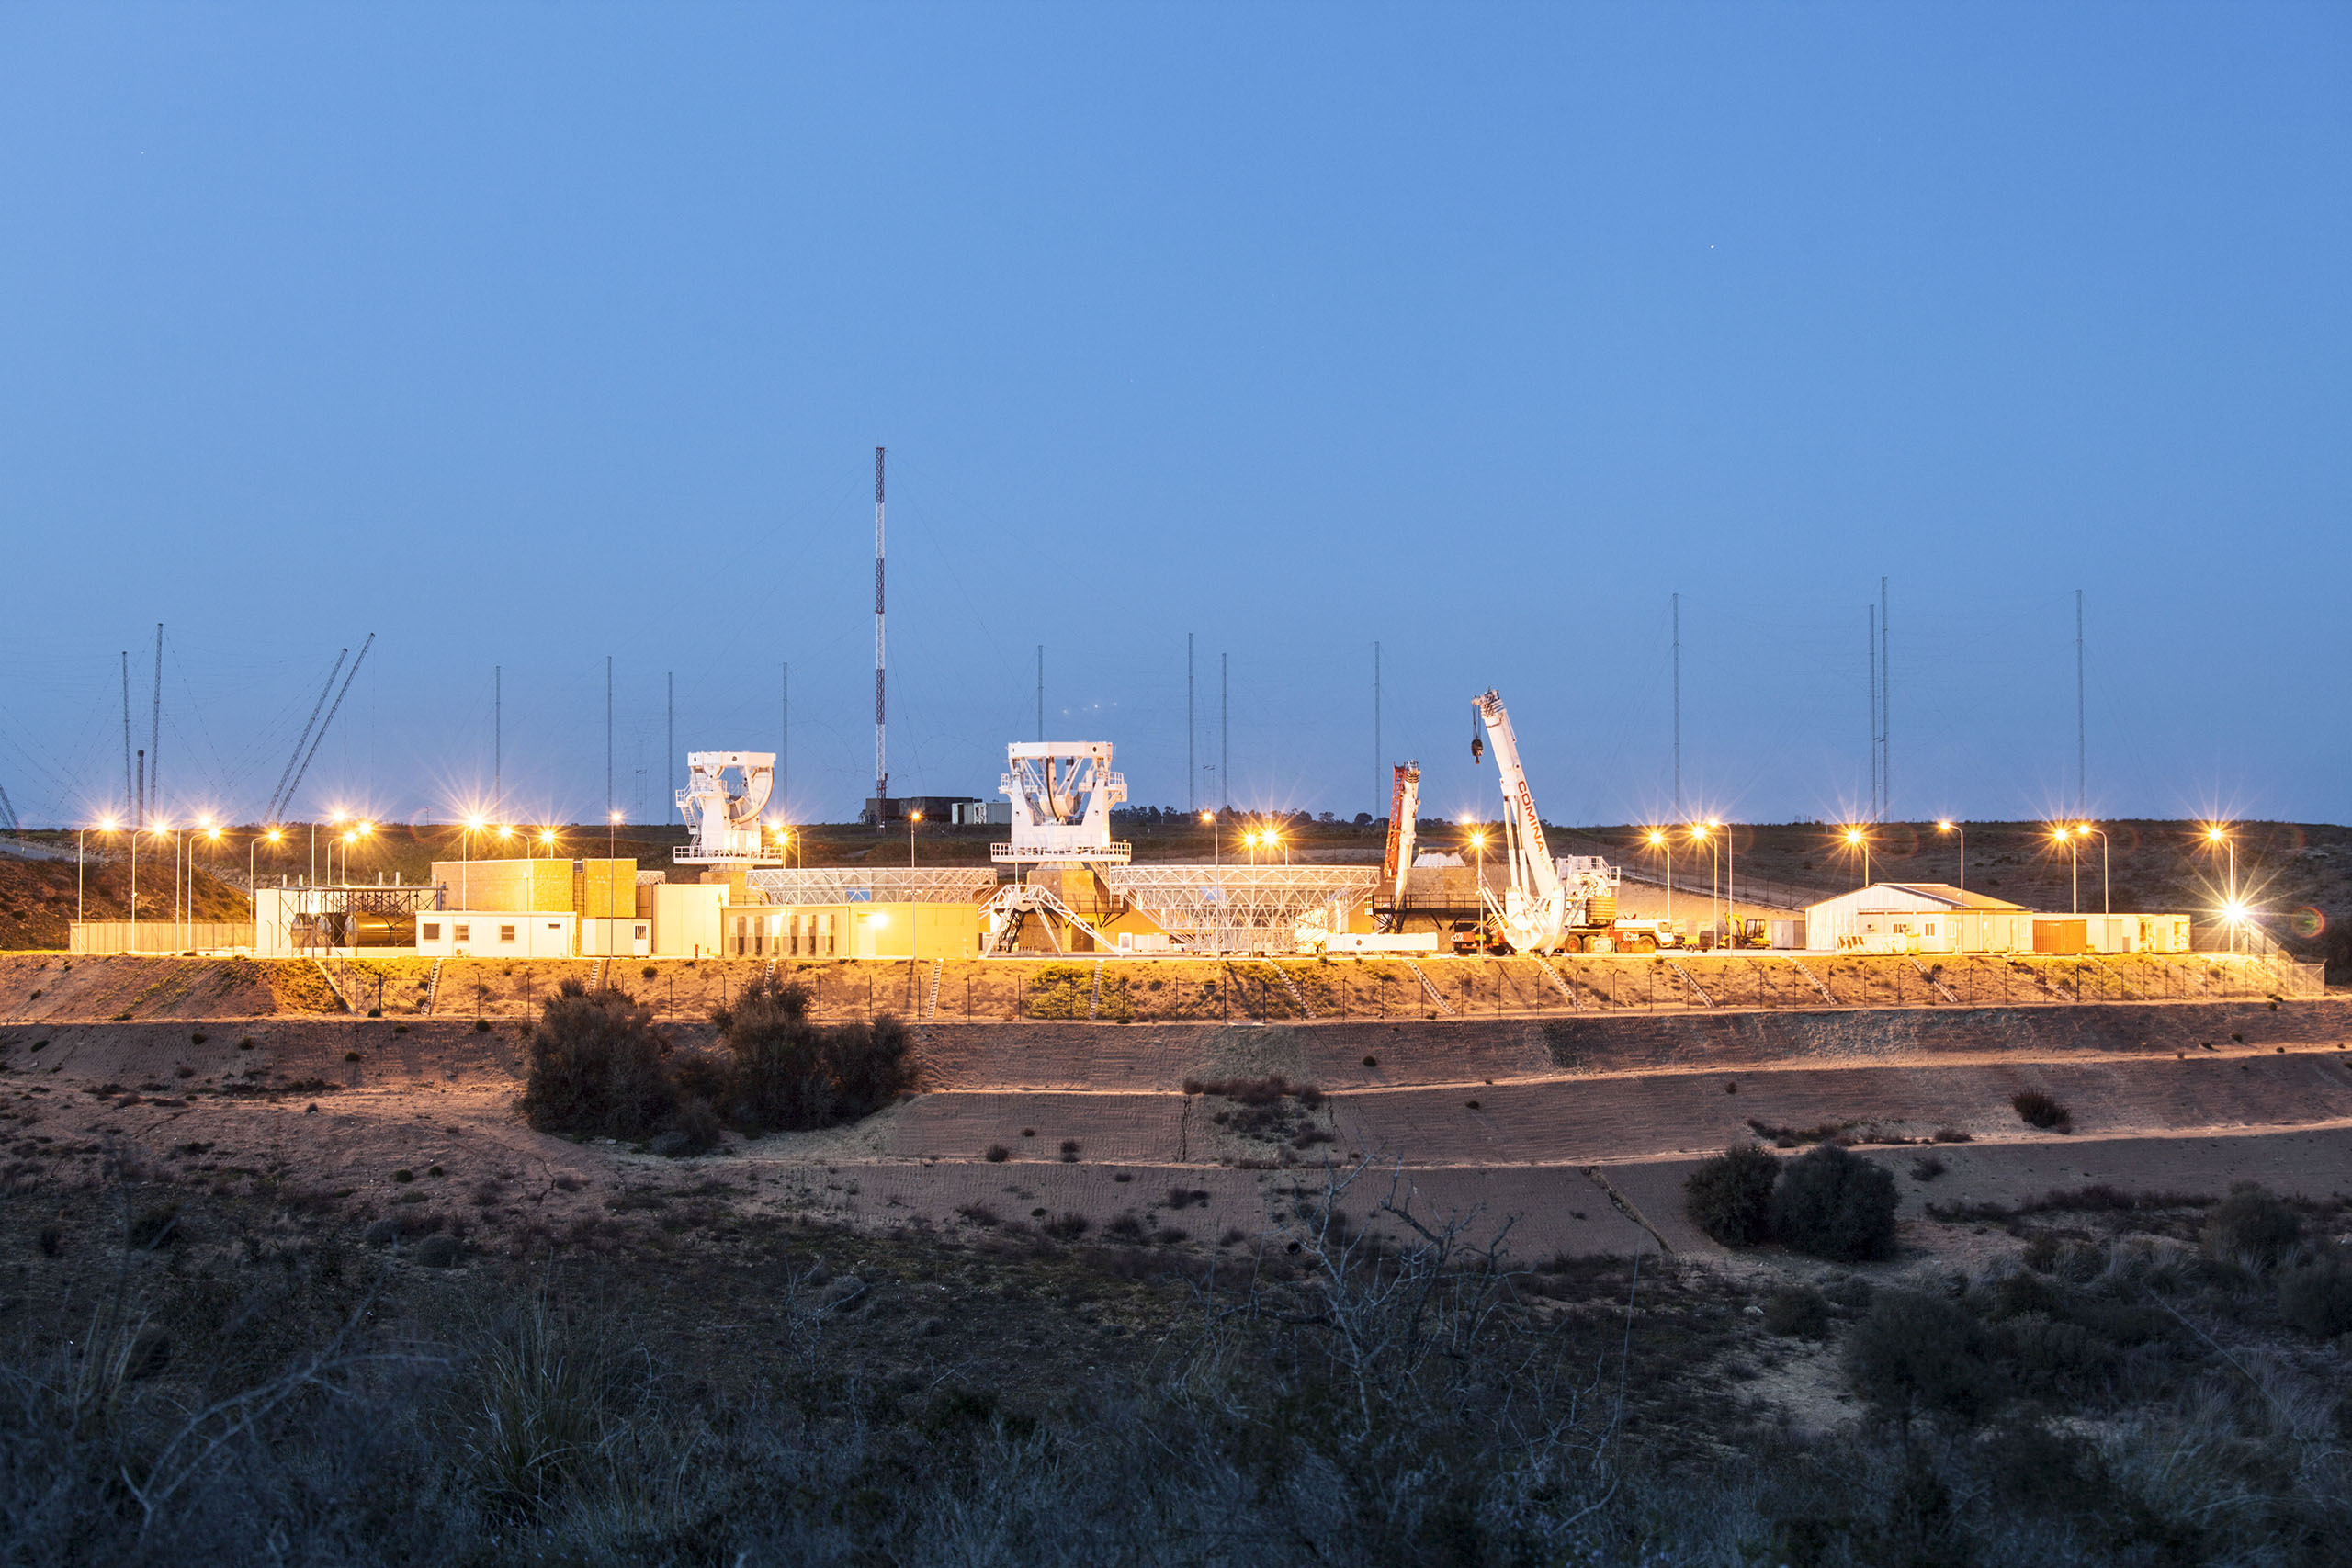 An evening view of an Mobile User Objective System (MUOS) ground station in Niscemi, Italy, March 4, 2013.